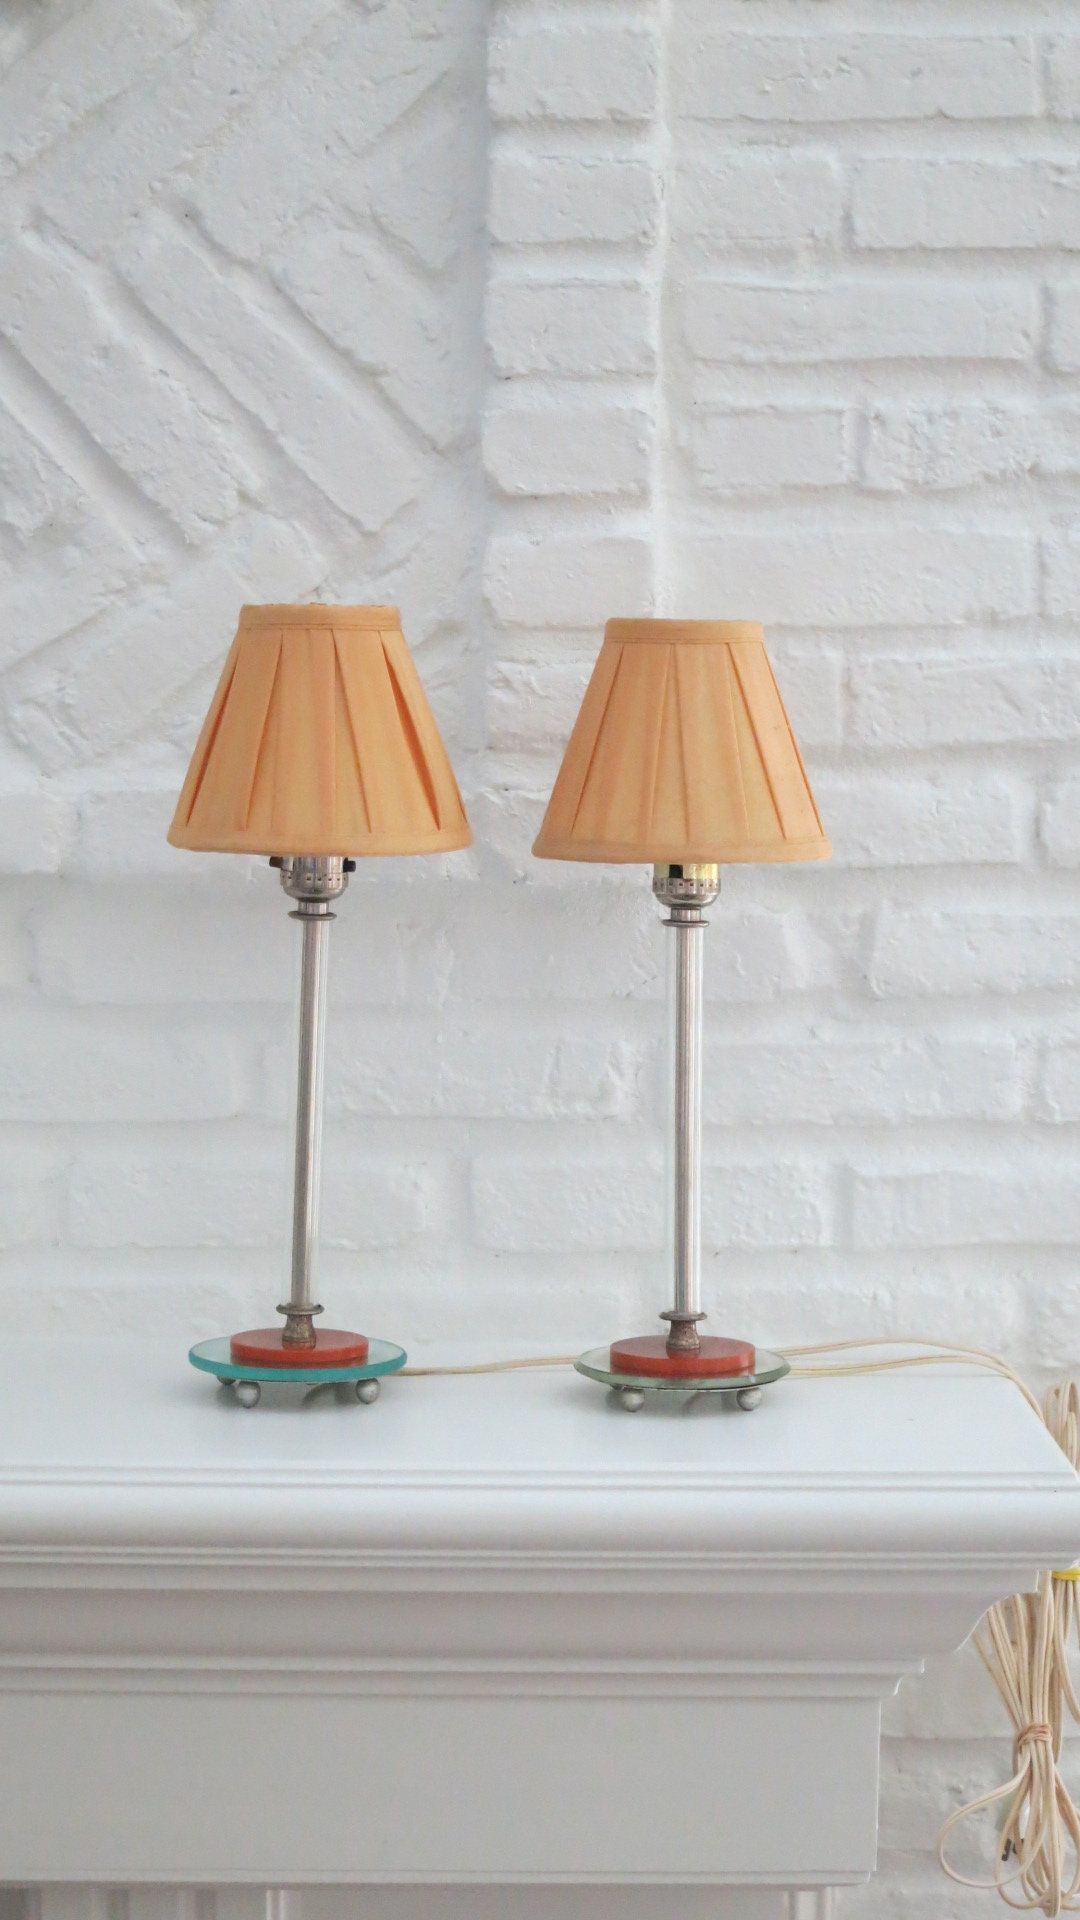 Pretty Pair Small Gl Mirrored Bakelite Table Lamps Vintage Bedside Lighting Vanity Bourdoir Nursery Accent Lights By Caughtmyfancy On